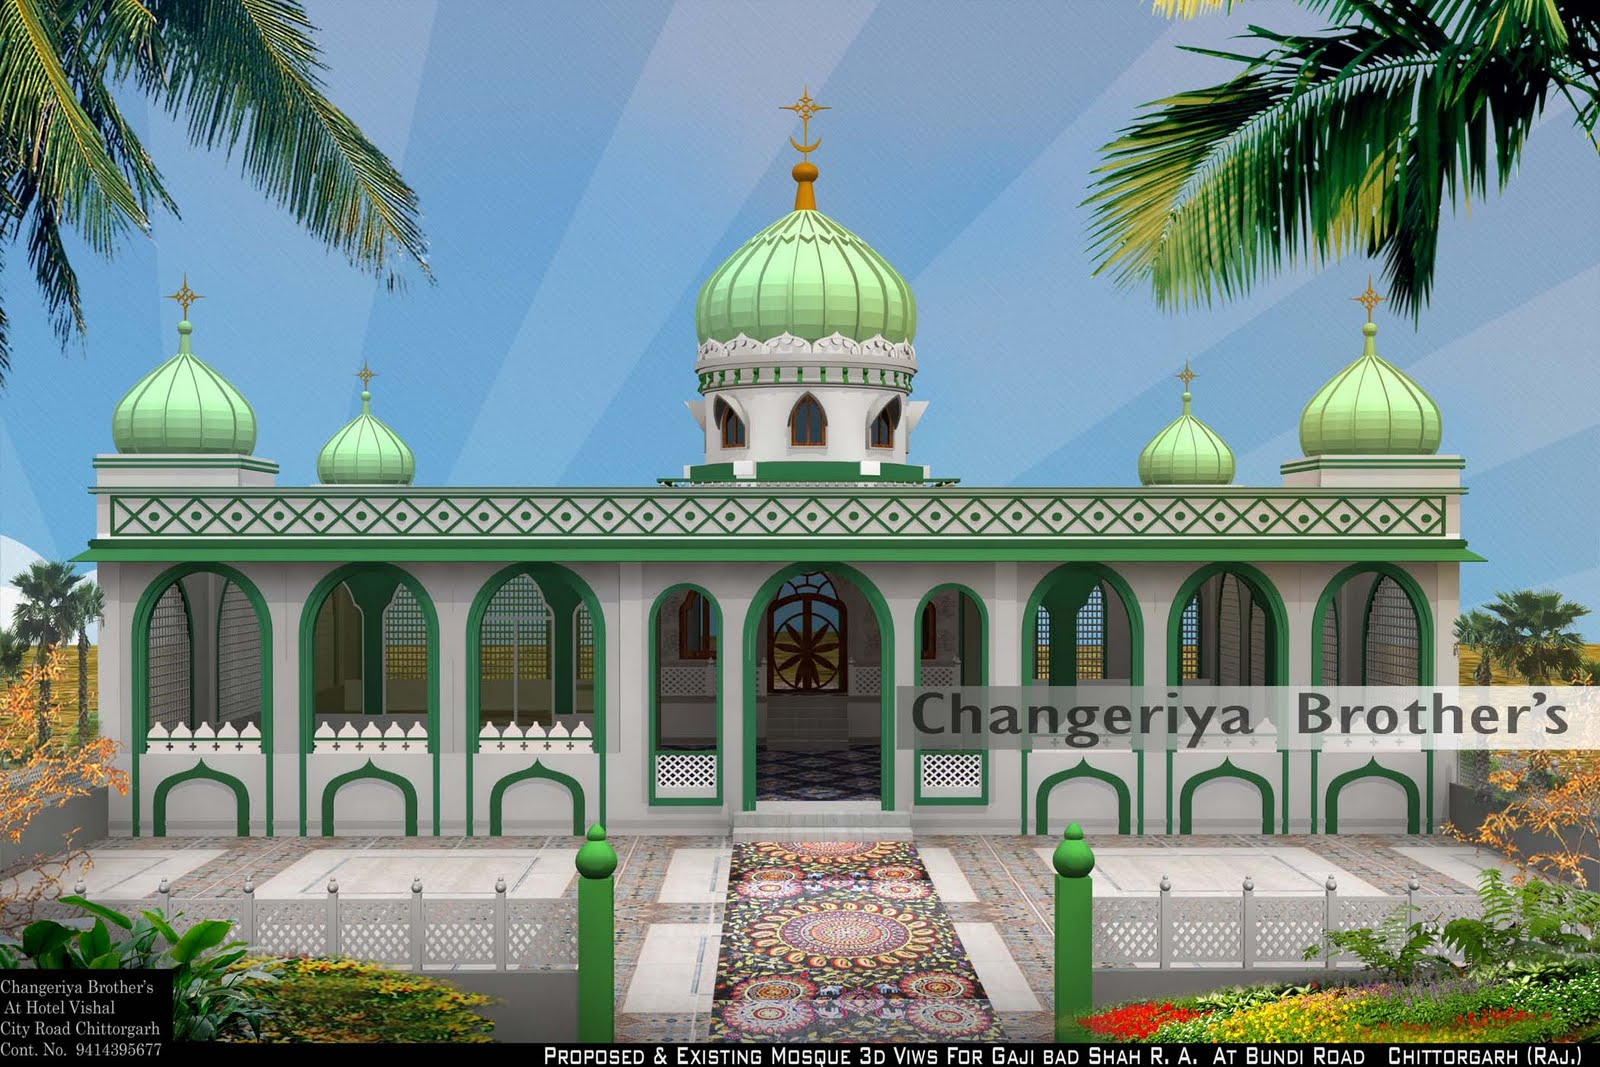 Mosque 3d modling project for gaji bad shah r a for Mosque exterior design